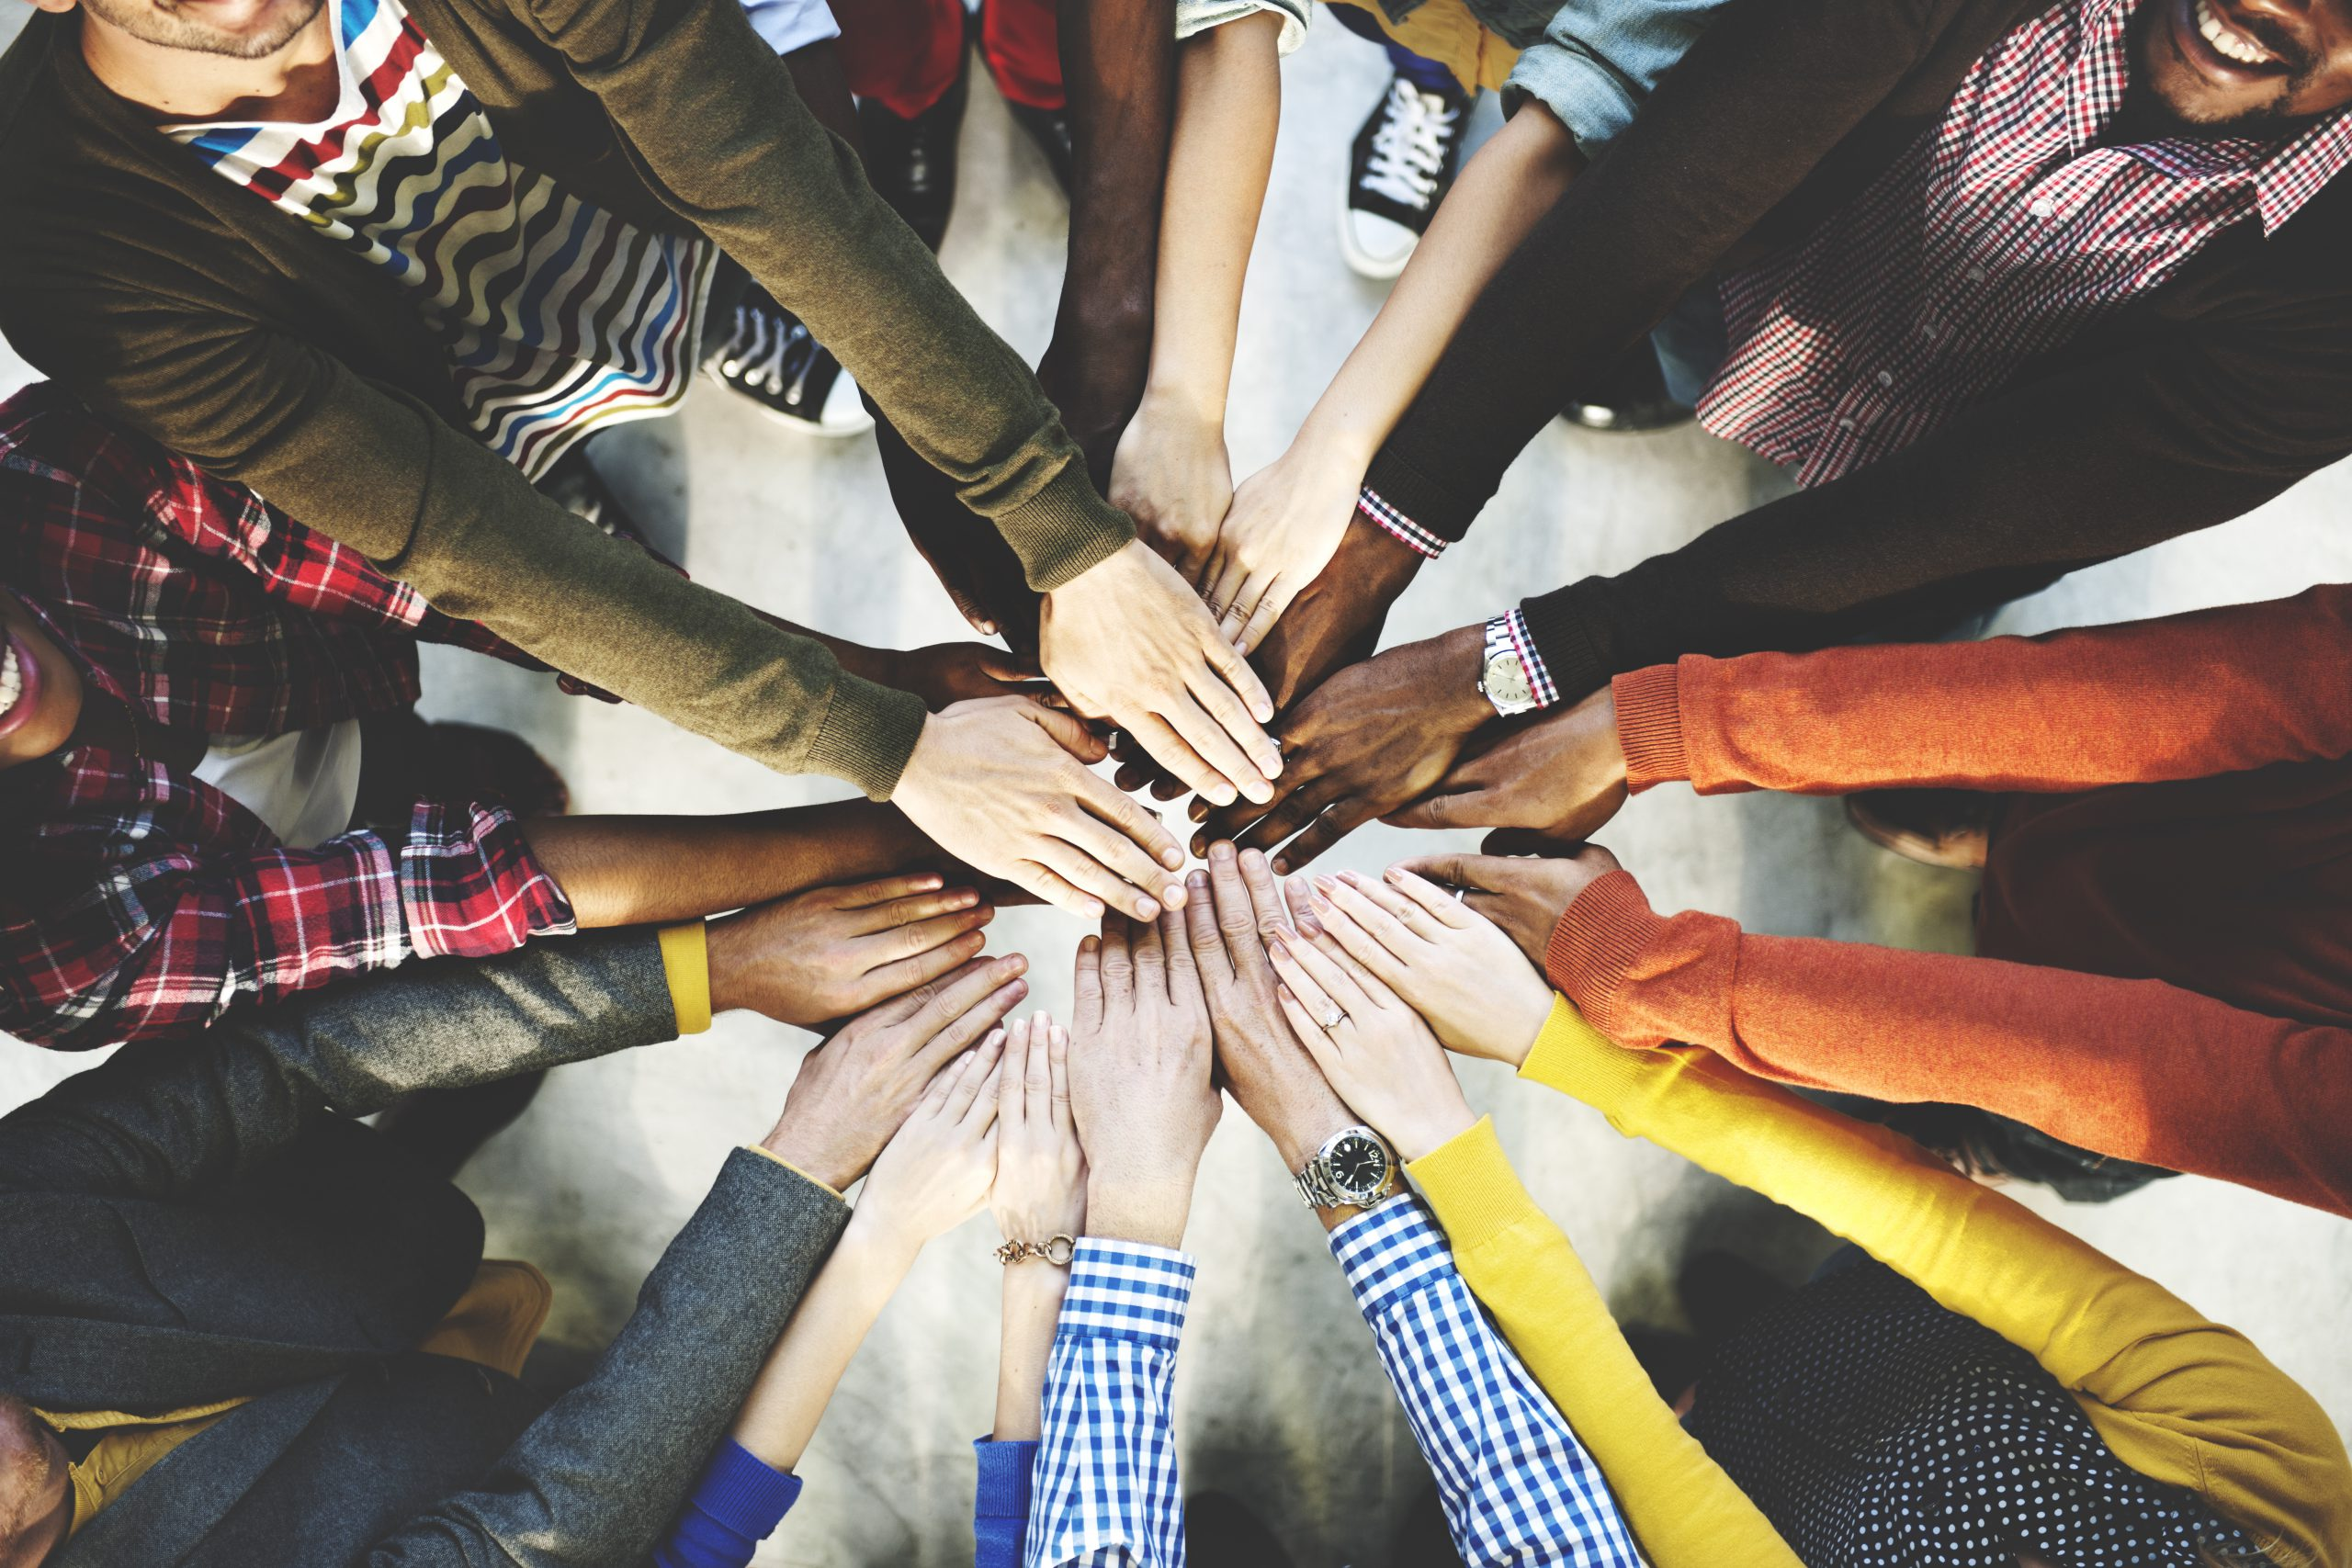 How To Build Diversity and Inclusion In The Workplace